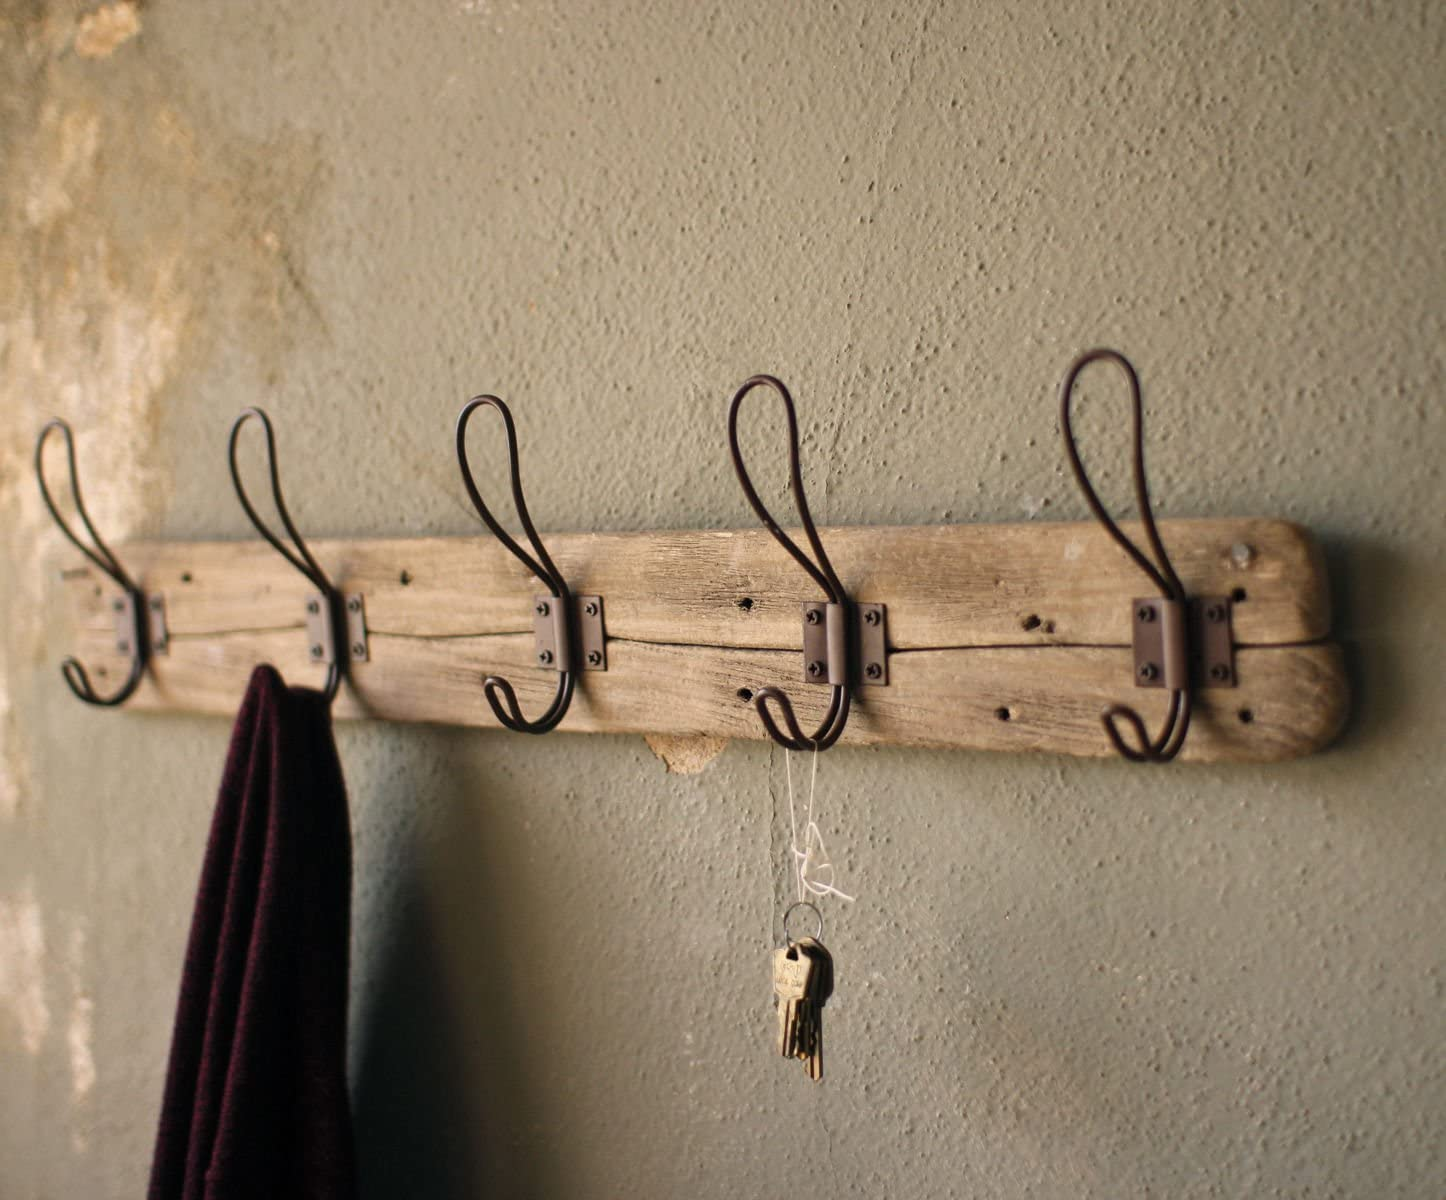 Robes Hang Clothes Coat Hooks Hat Set of 10 Farmhouse Entryway Hooks with Screws Included Heavy Duty Black Coat Hangers